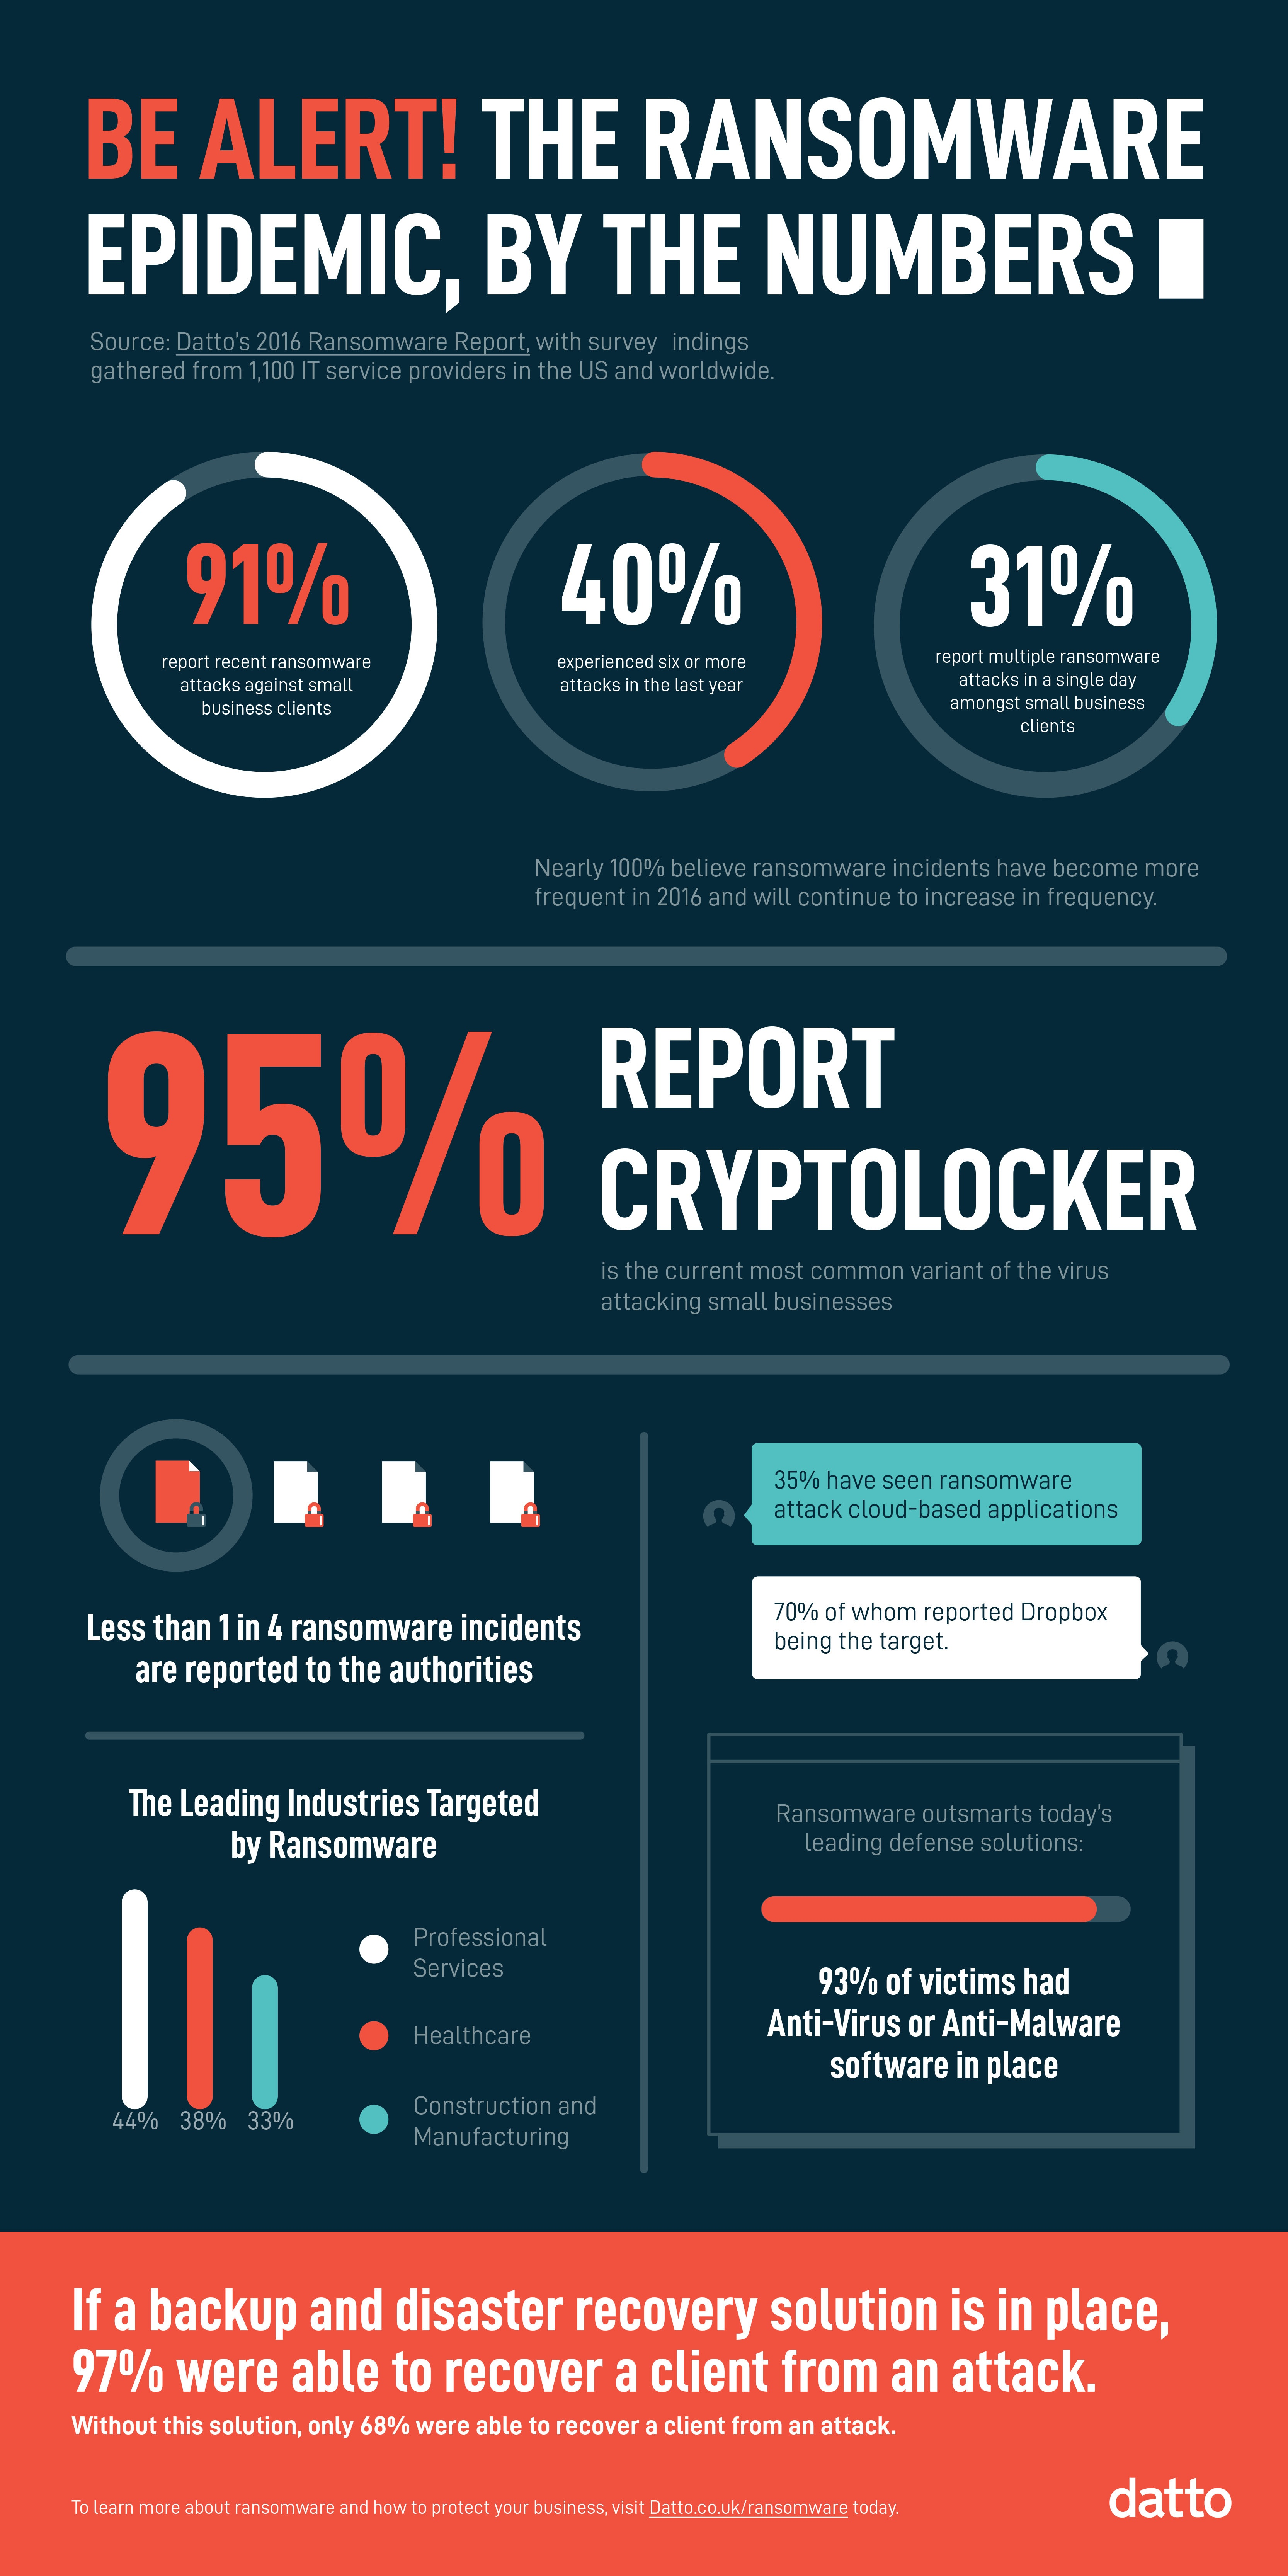 The ransomware epidemic, by the numbers